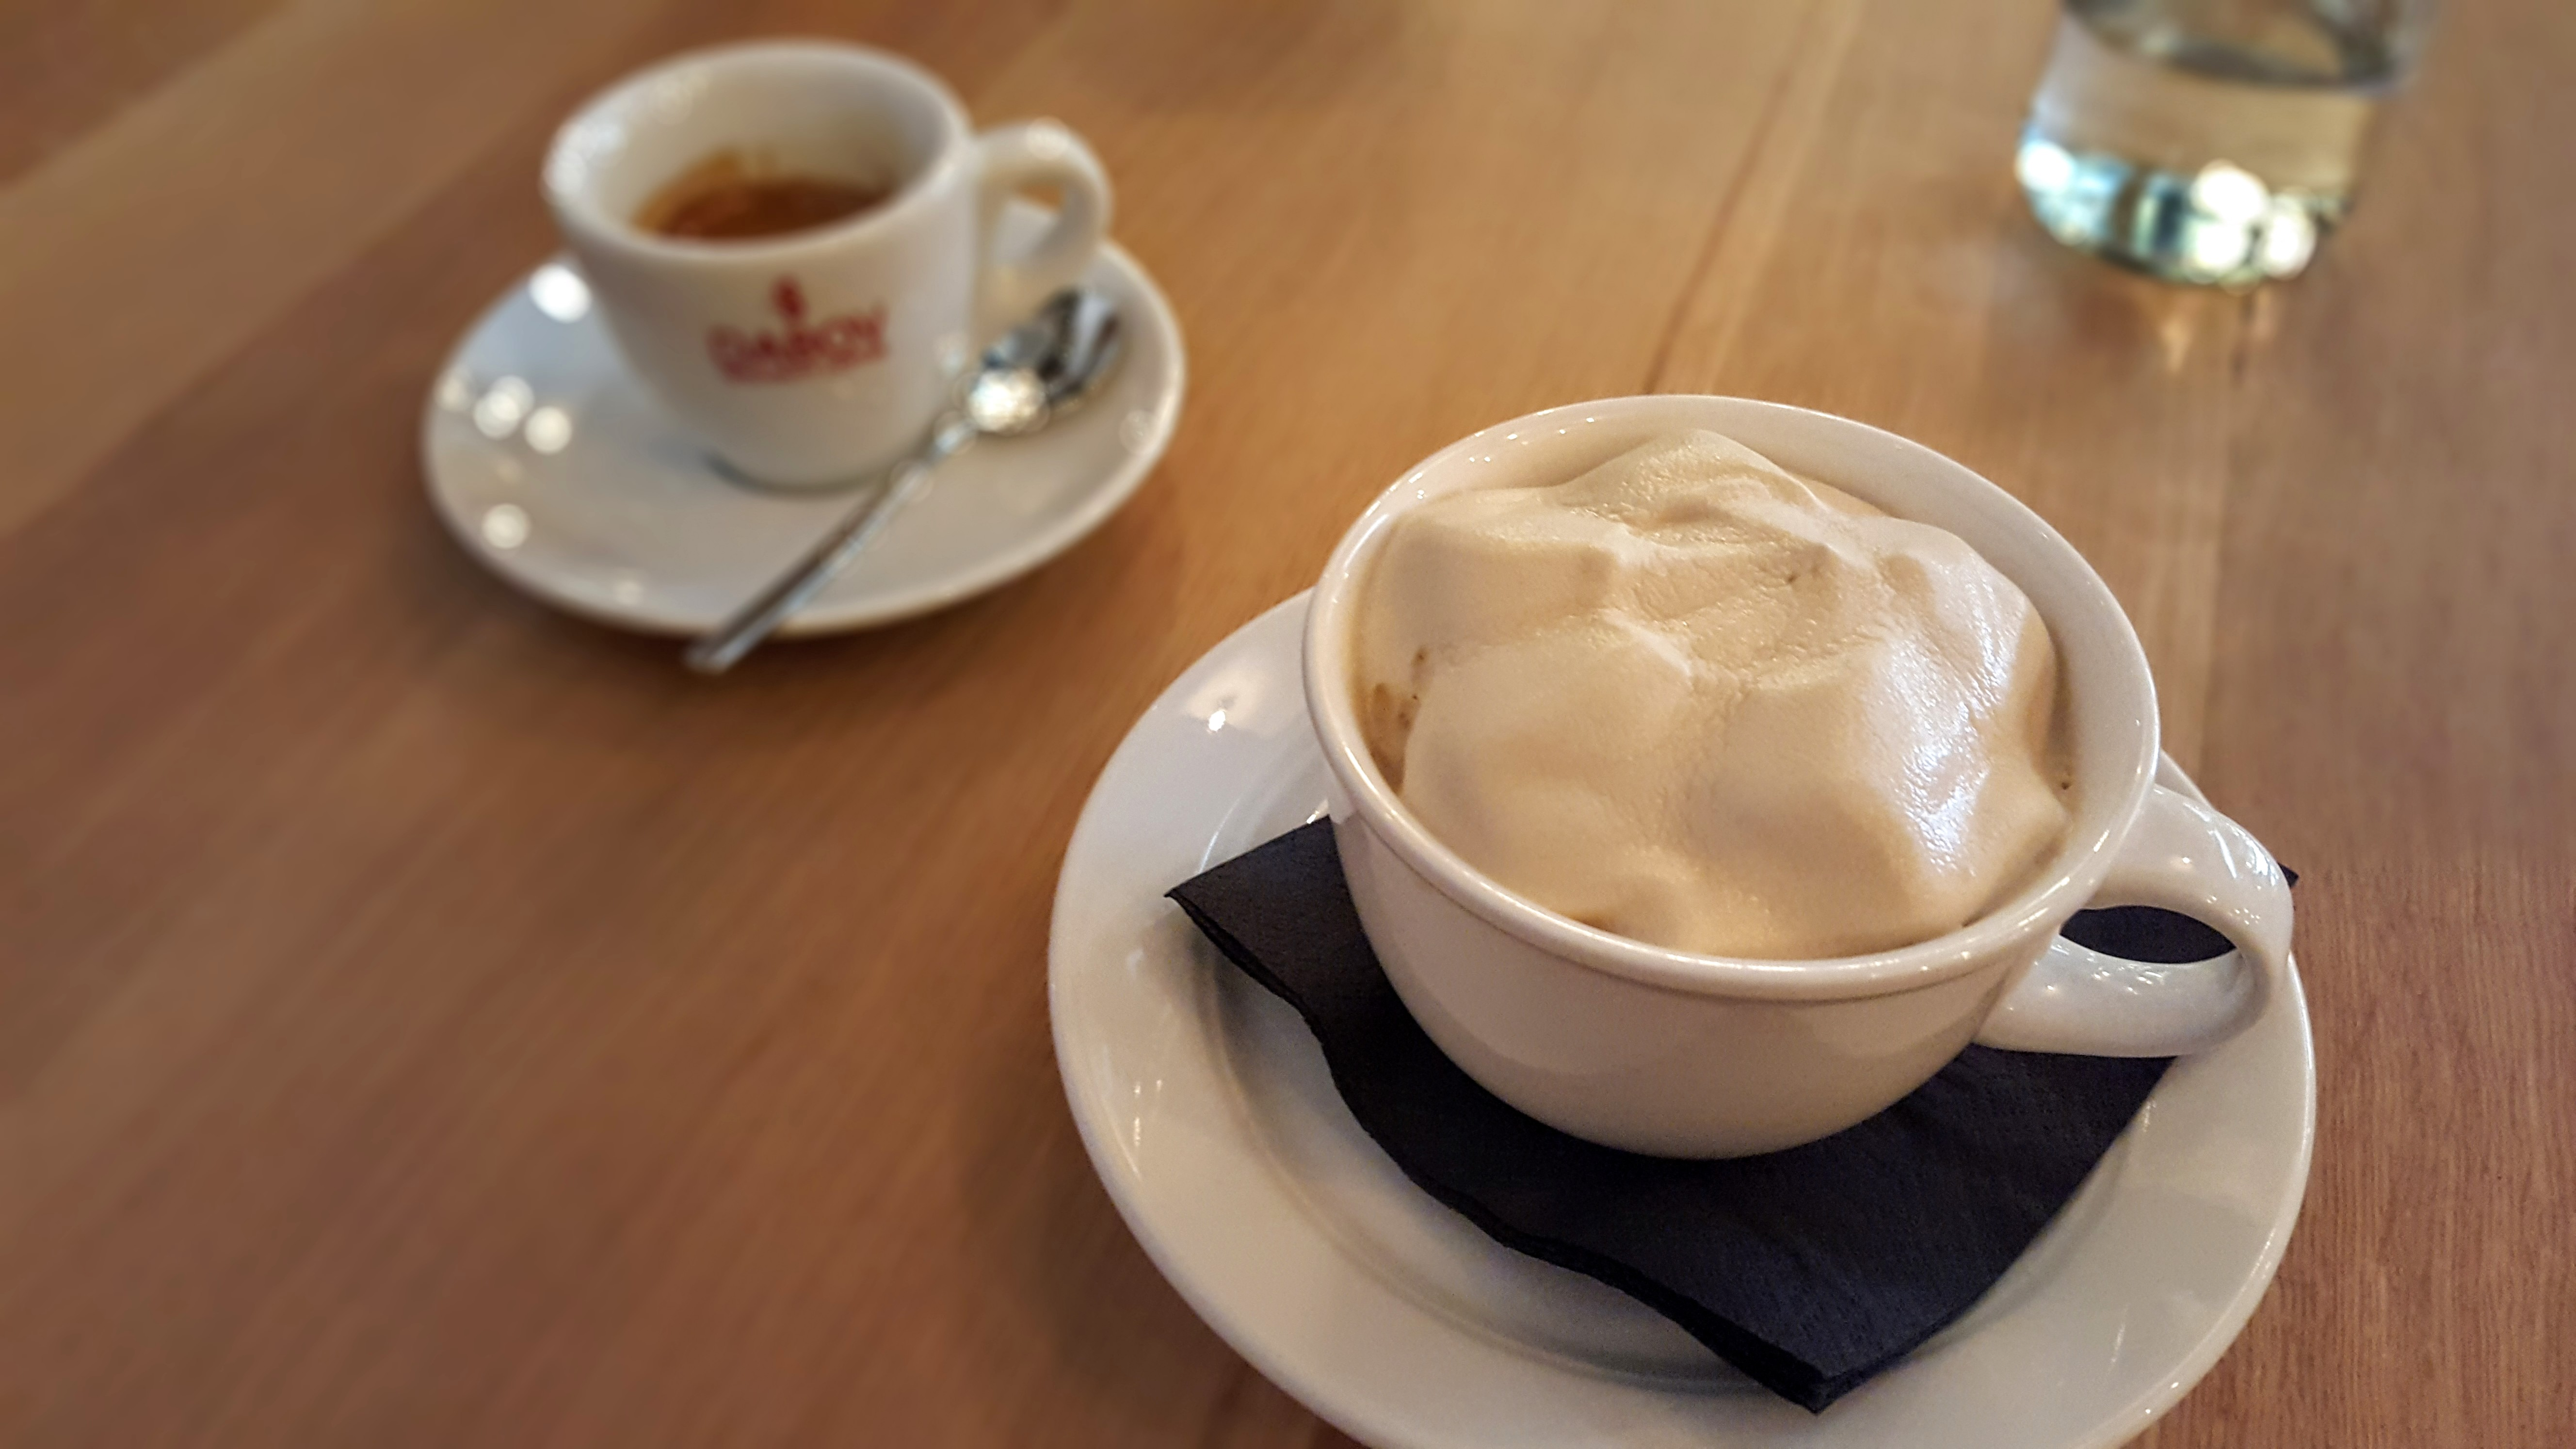 Cappuccino dessert at Cosmos by placescases.com.jpg